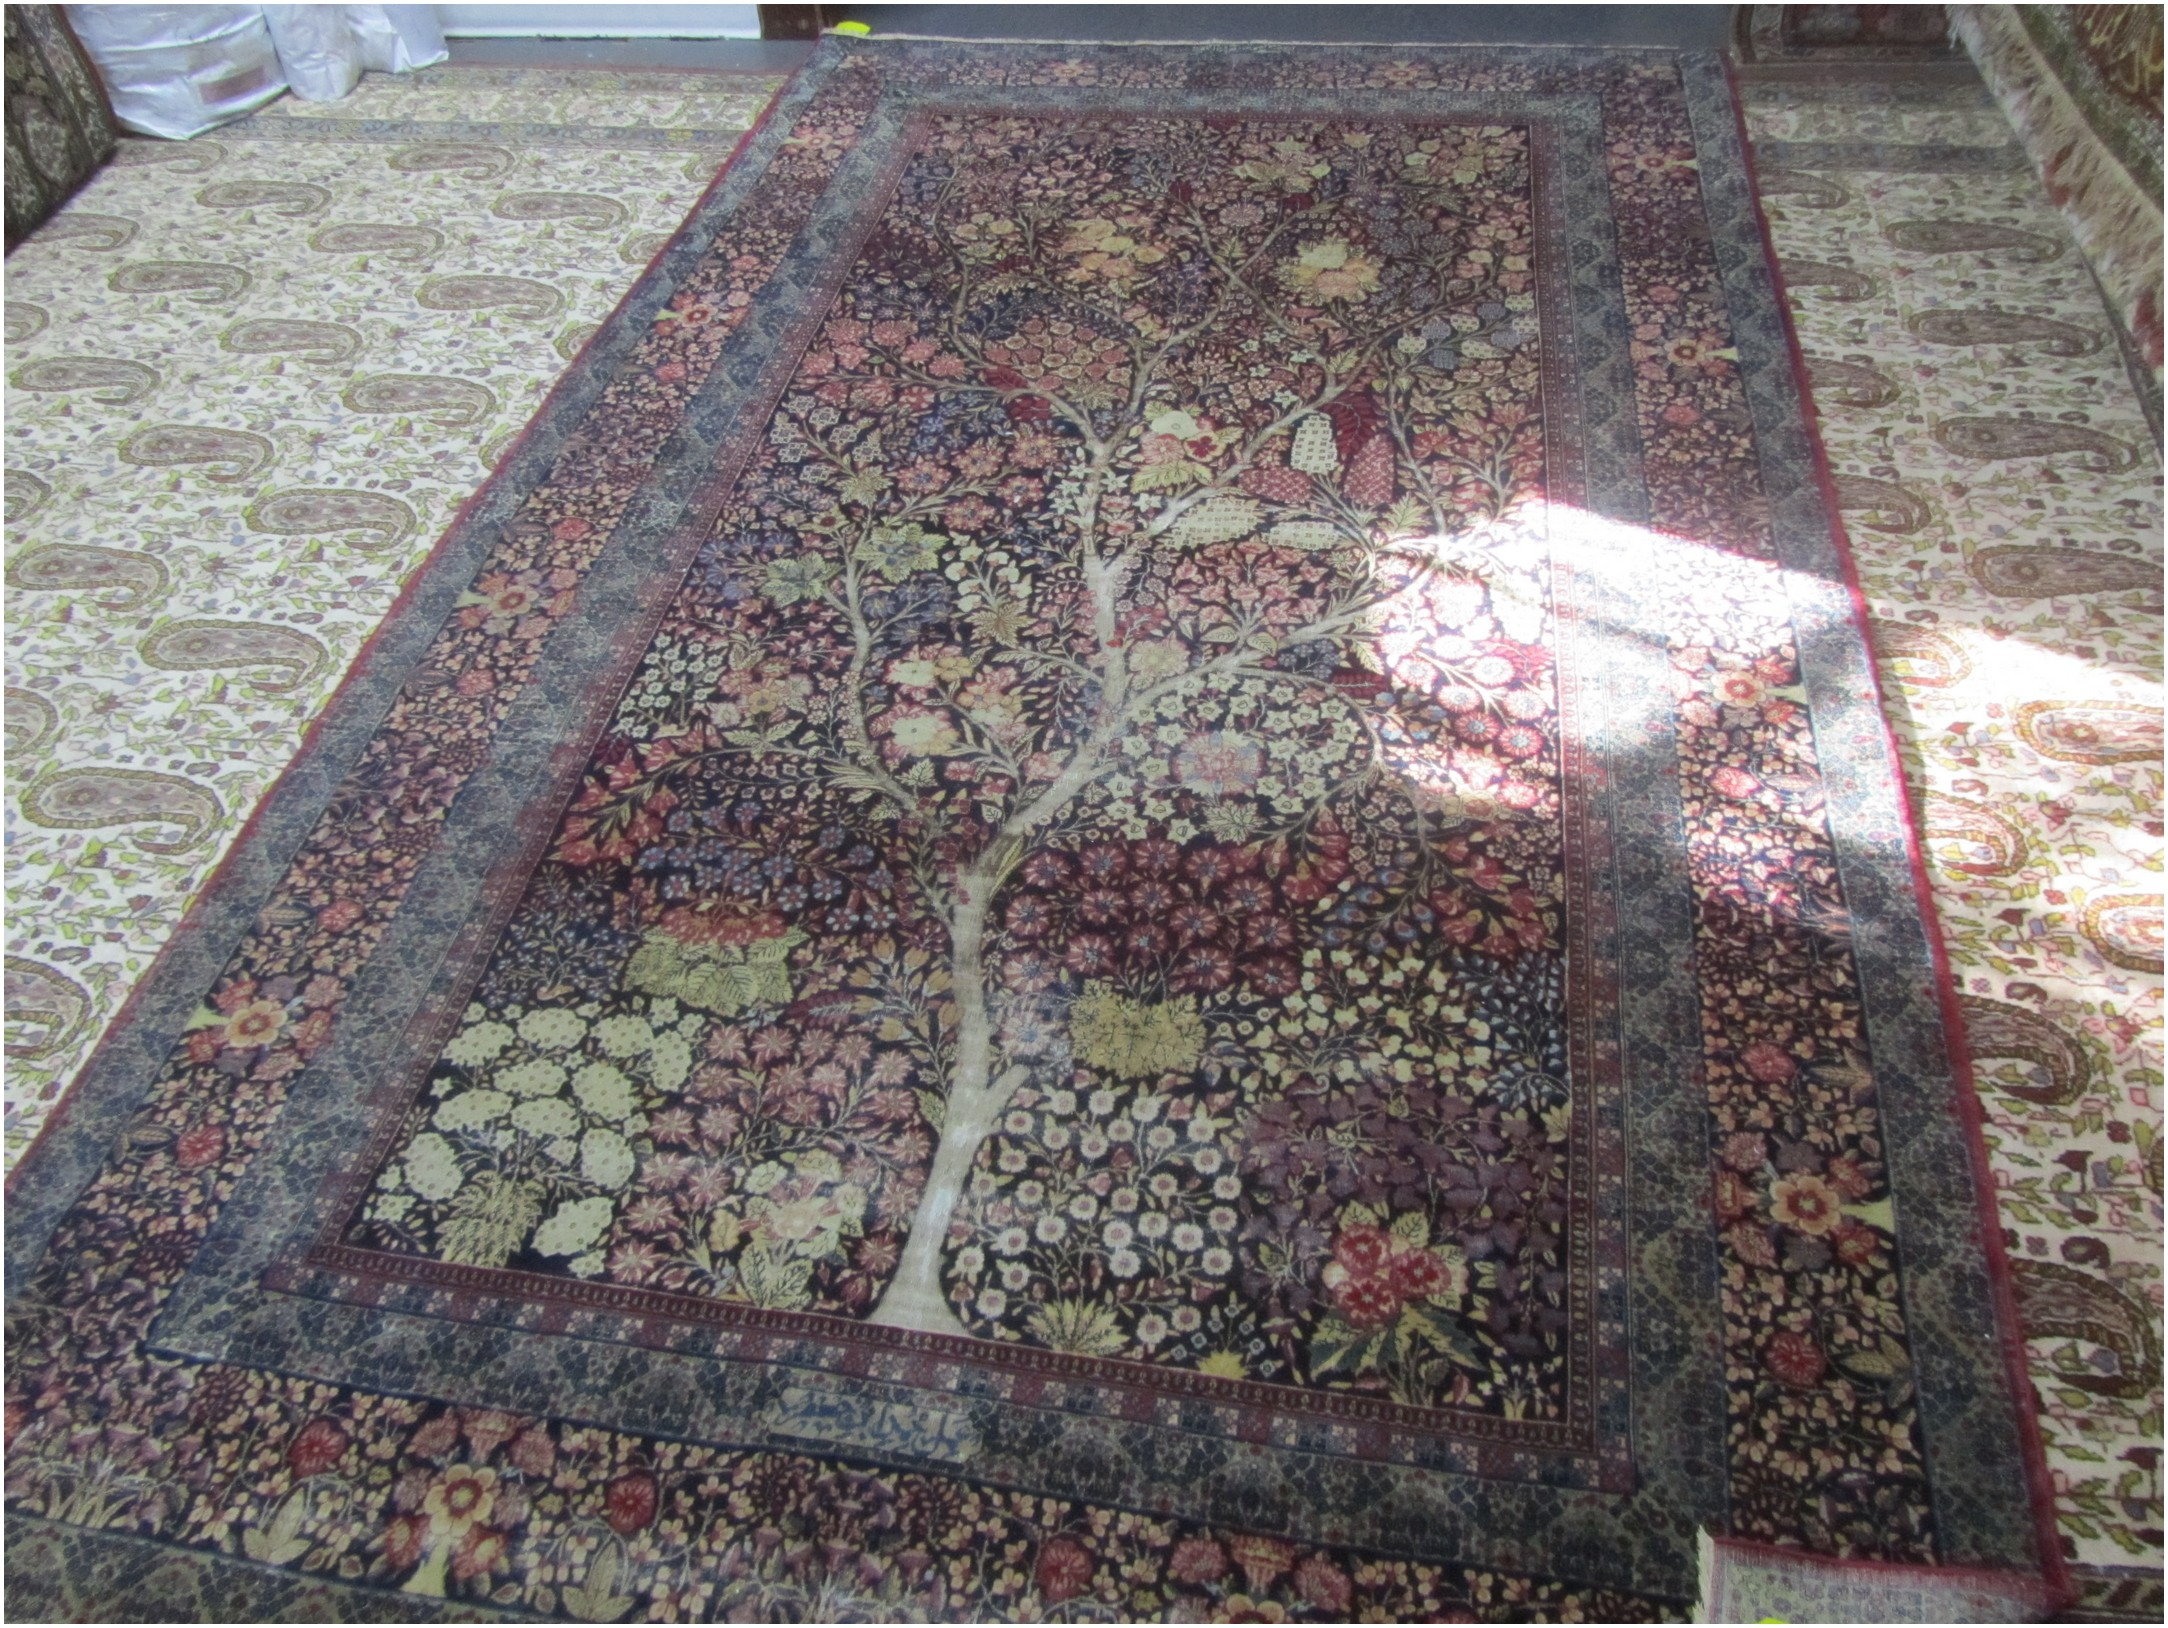 The rug measures five feet and two inches by nine feet.